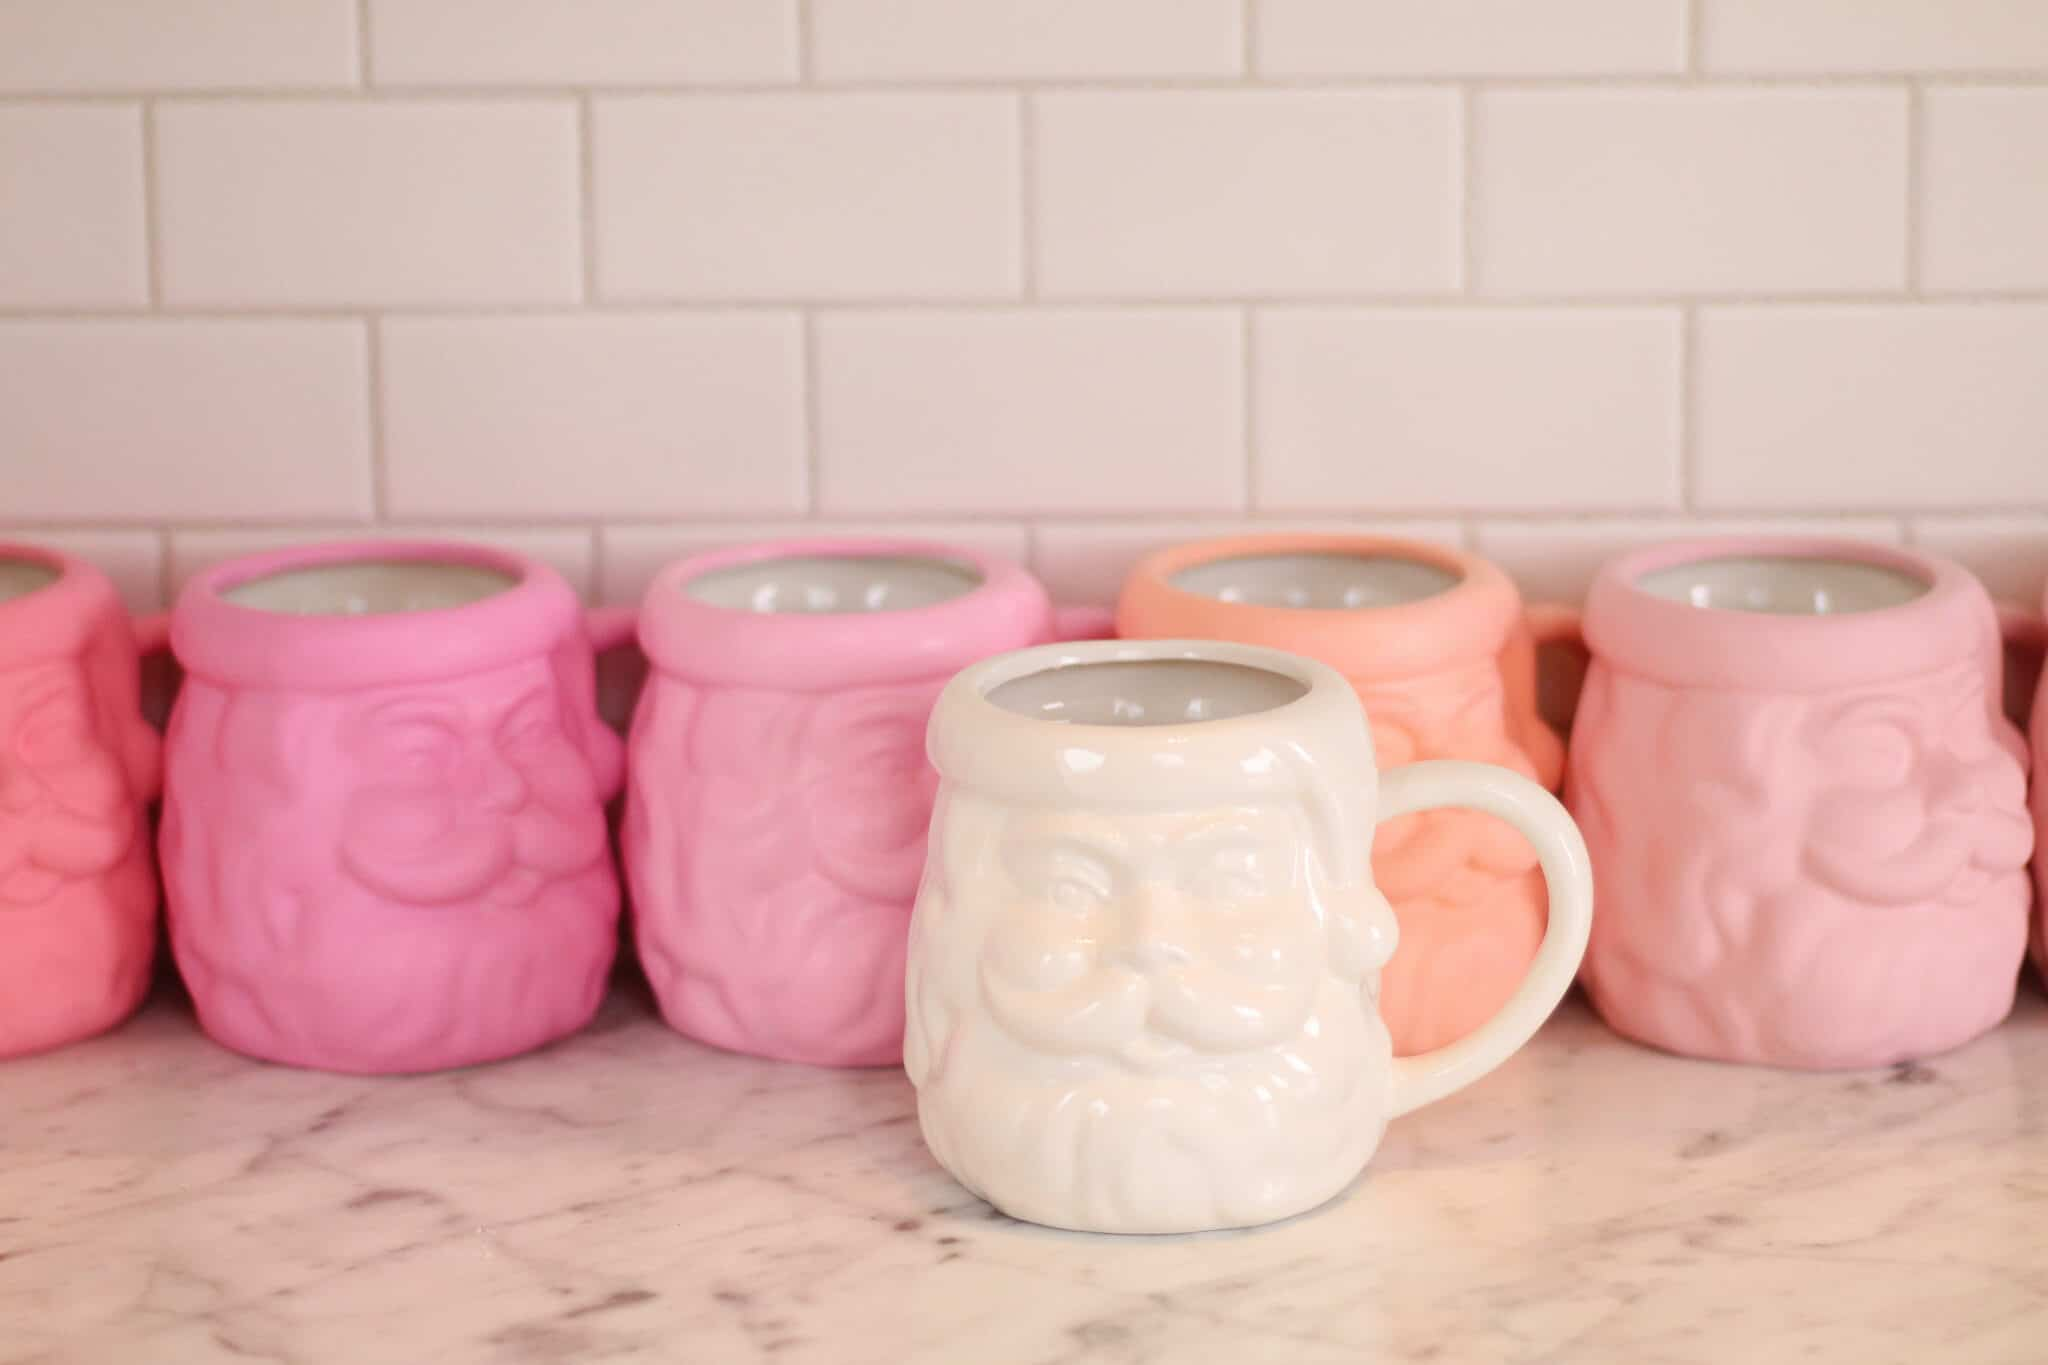 Pink and white Santa mugs